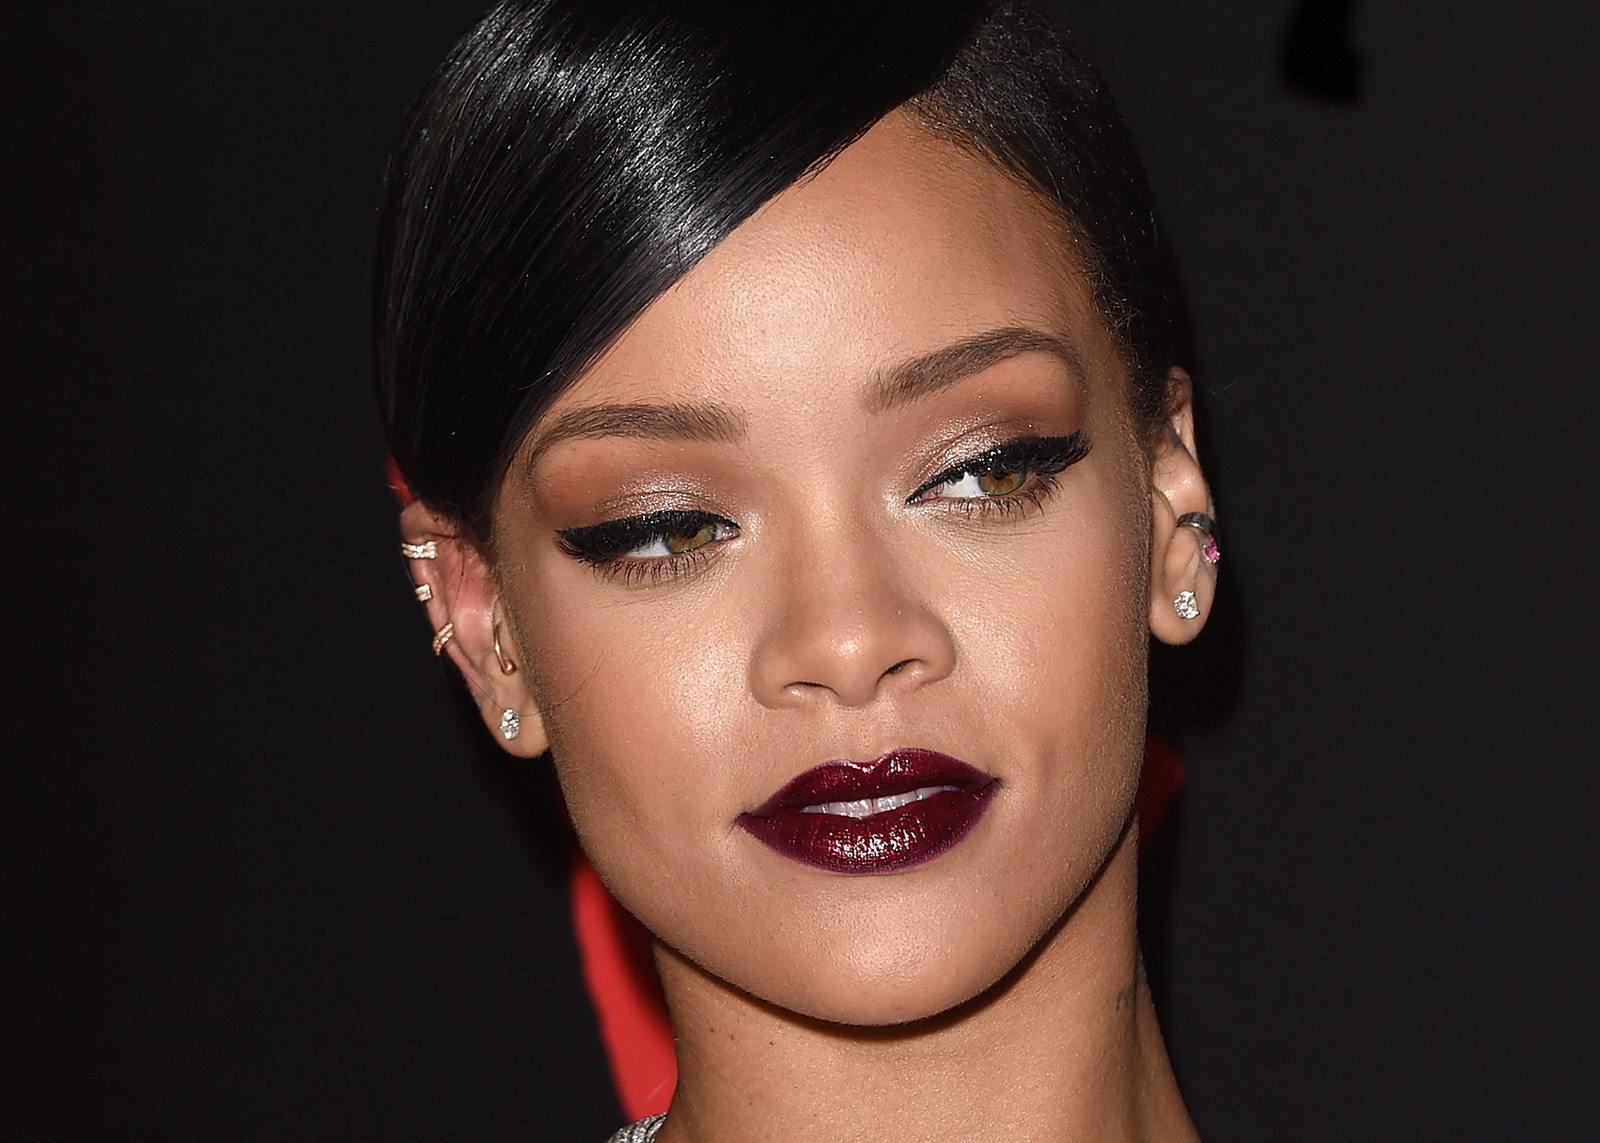 Rihanna's Most Iconic Makeup Looks